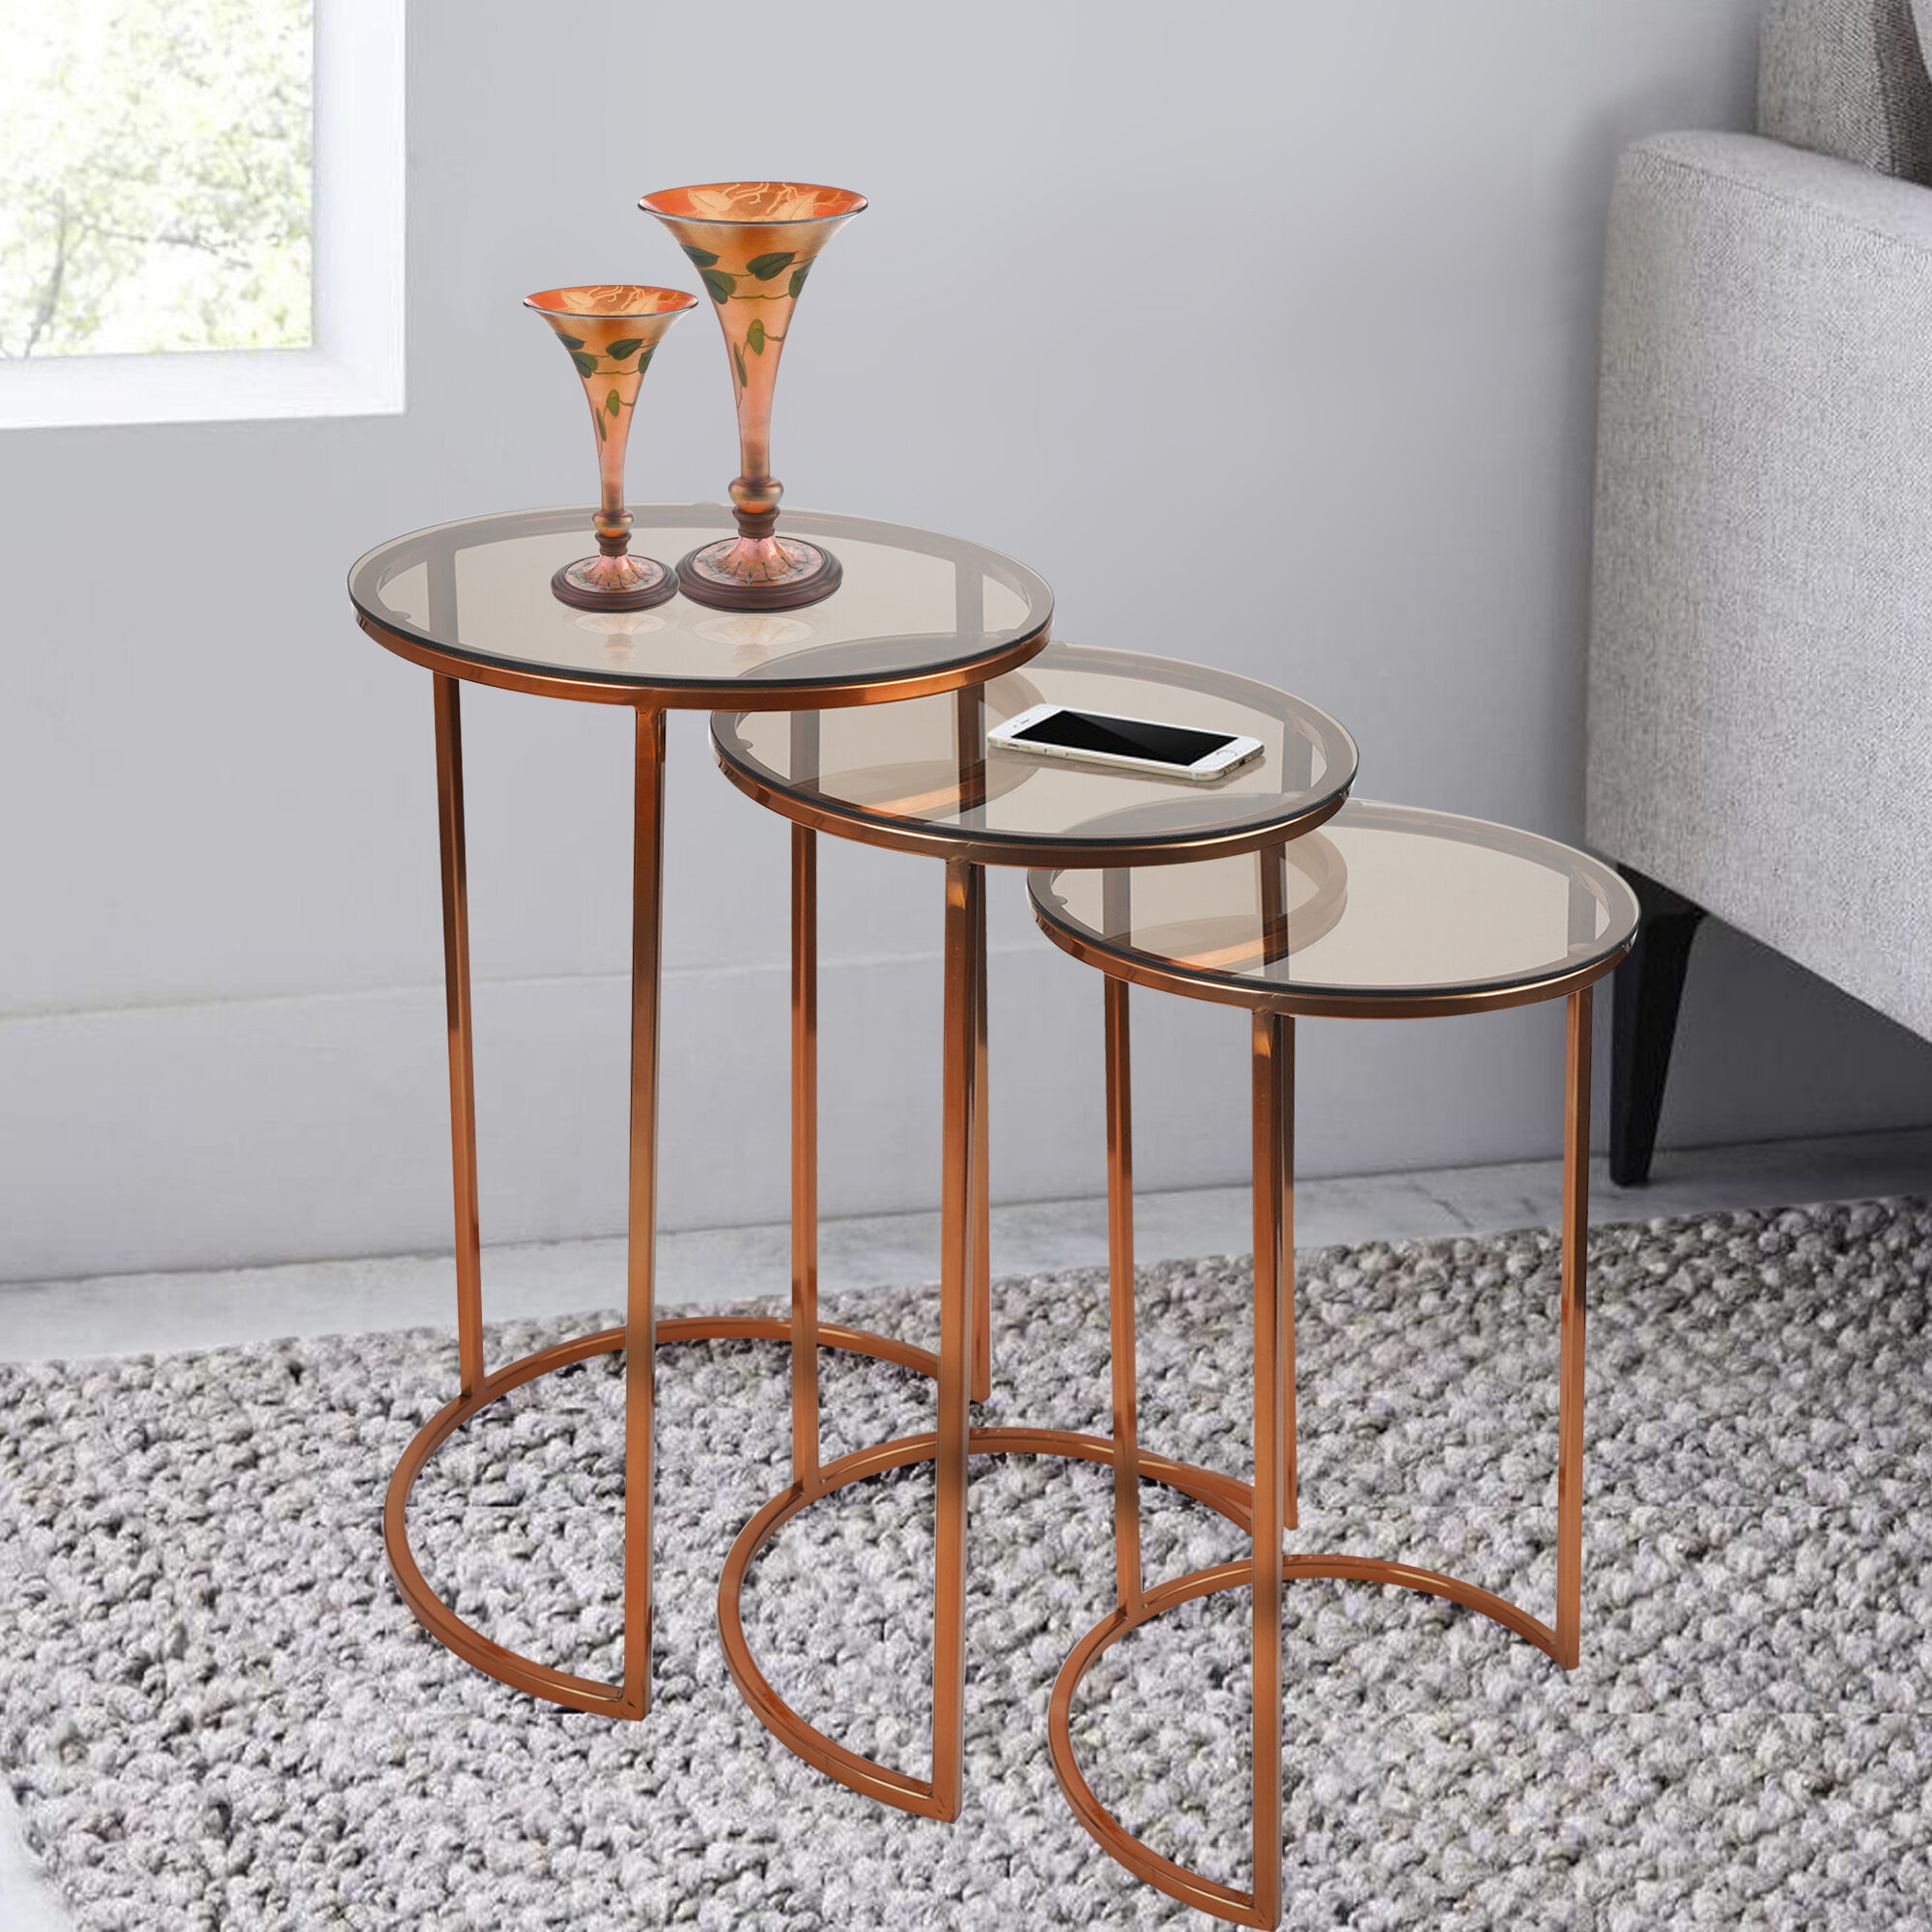 3 Glass Nesting Tables You Ll Love In 2021 Wayfair